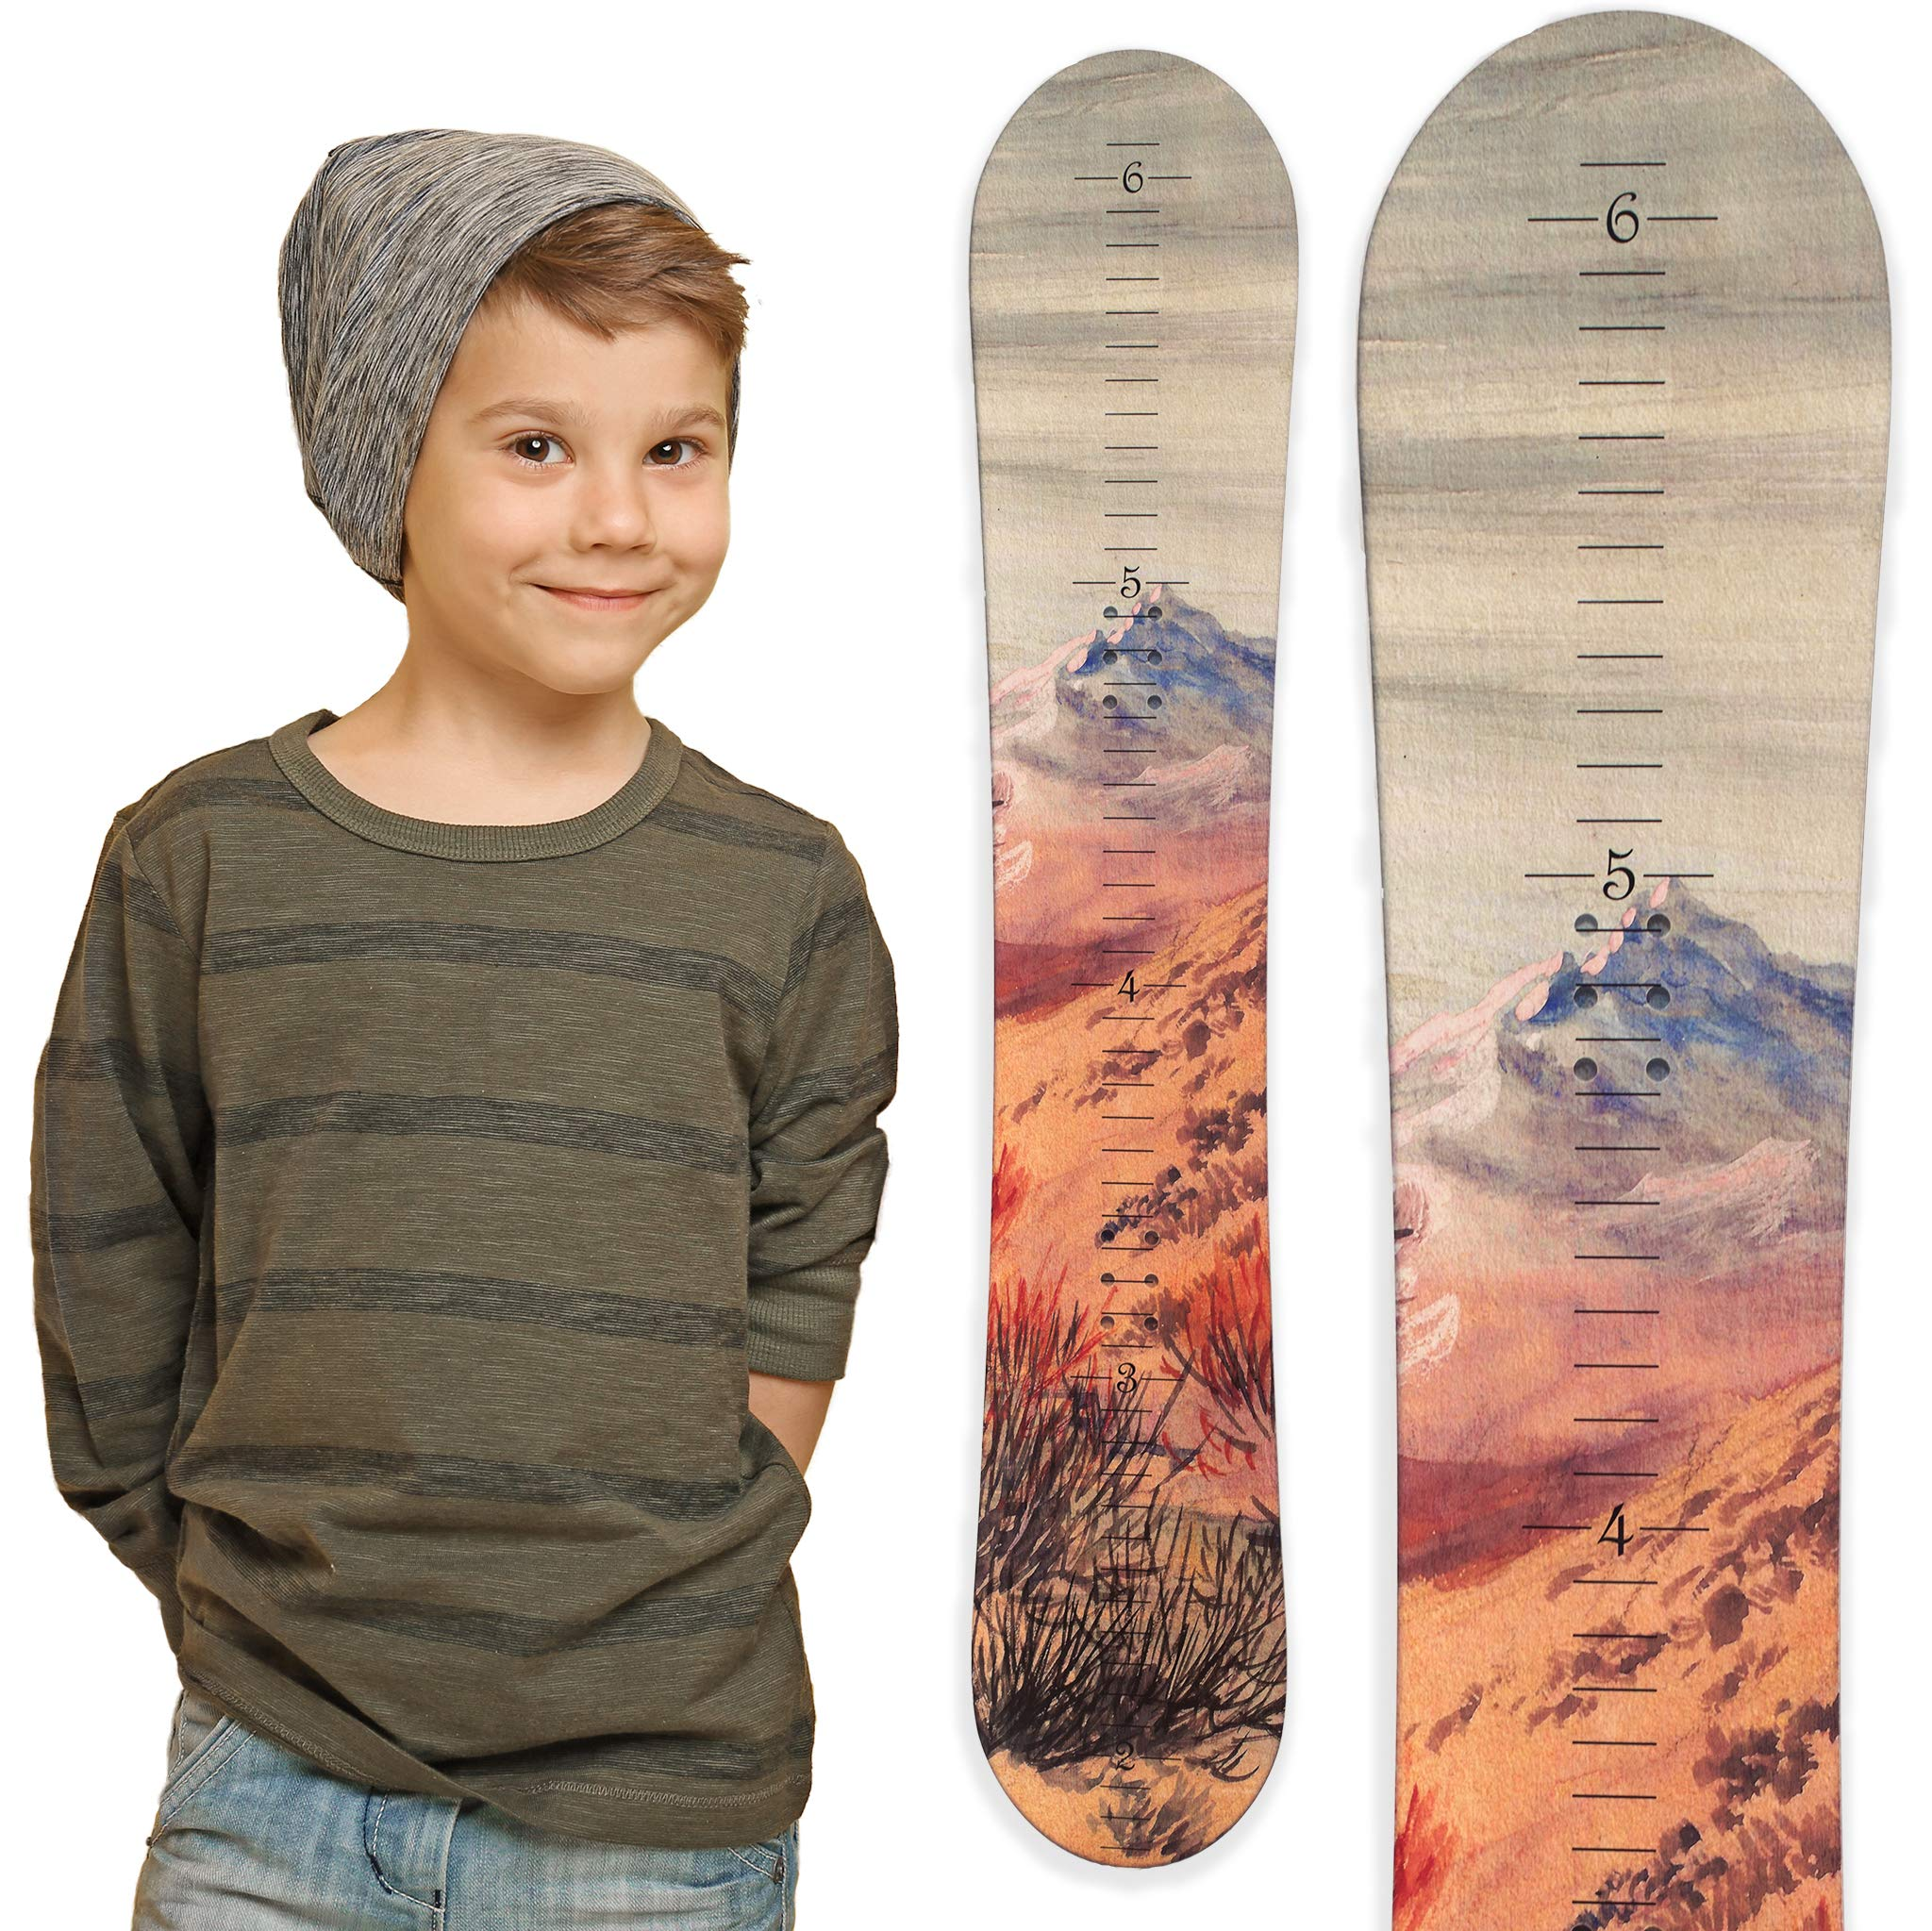 Growth Chart Art   Wooden Snowboard Height Chart for Kids, Boys, Girls for Measuring Height of Kids, Nursery Wall Decor   Baby Snowboard   Mountain by Growth Chart Art